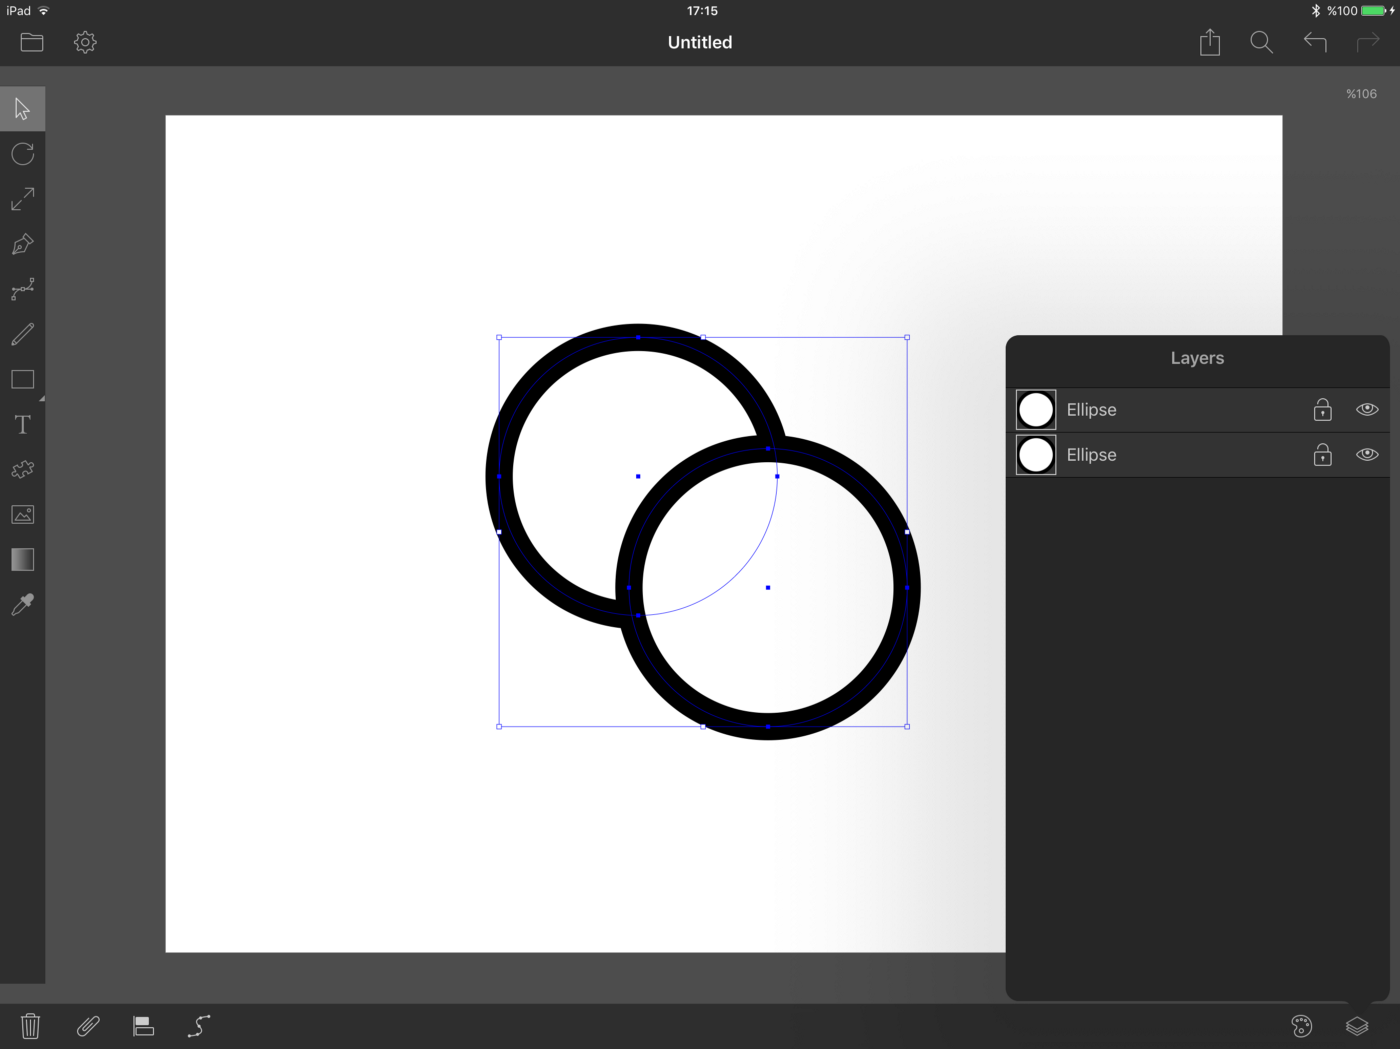 Does the perfect vector editor for iPad exist? - The Iconfinder Blog